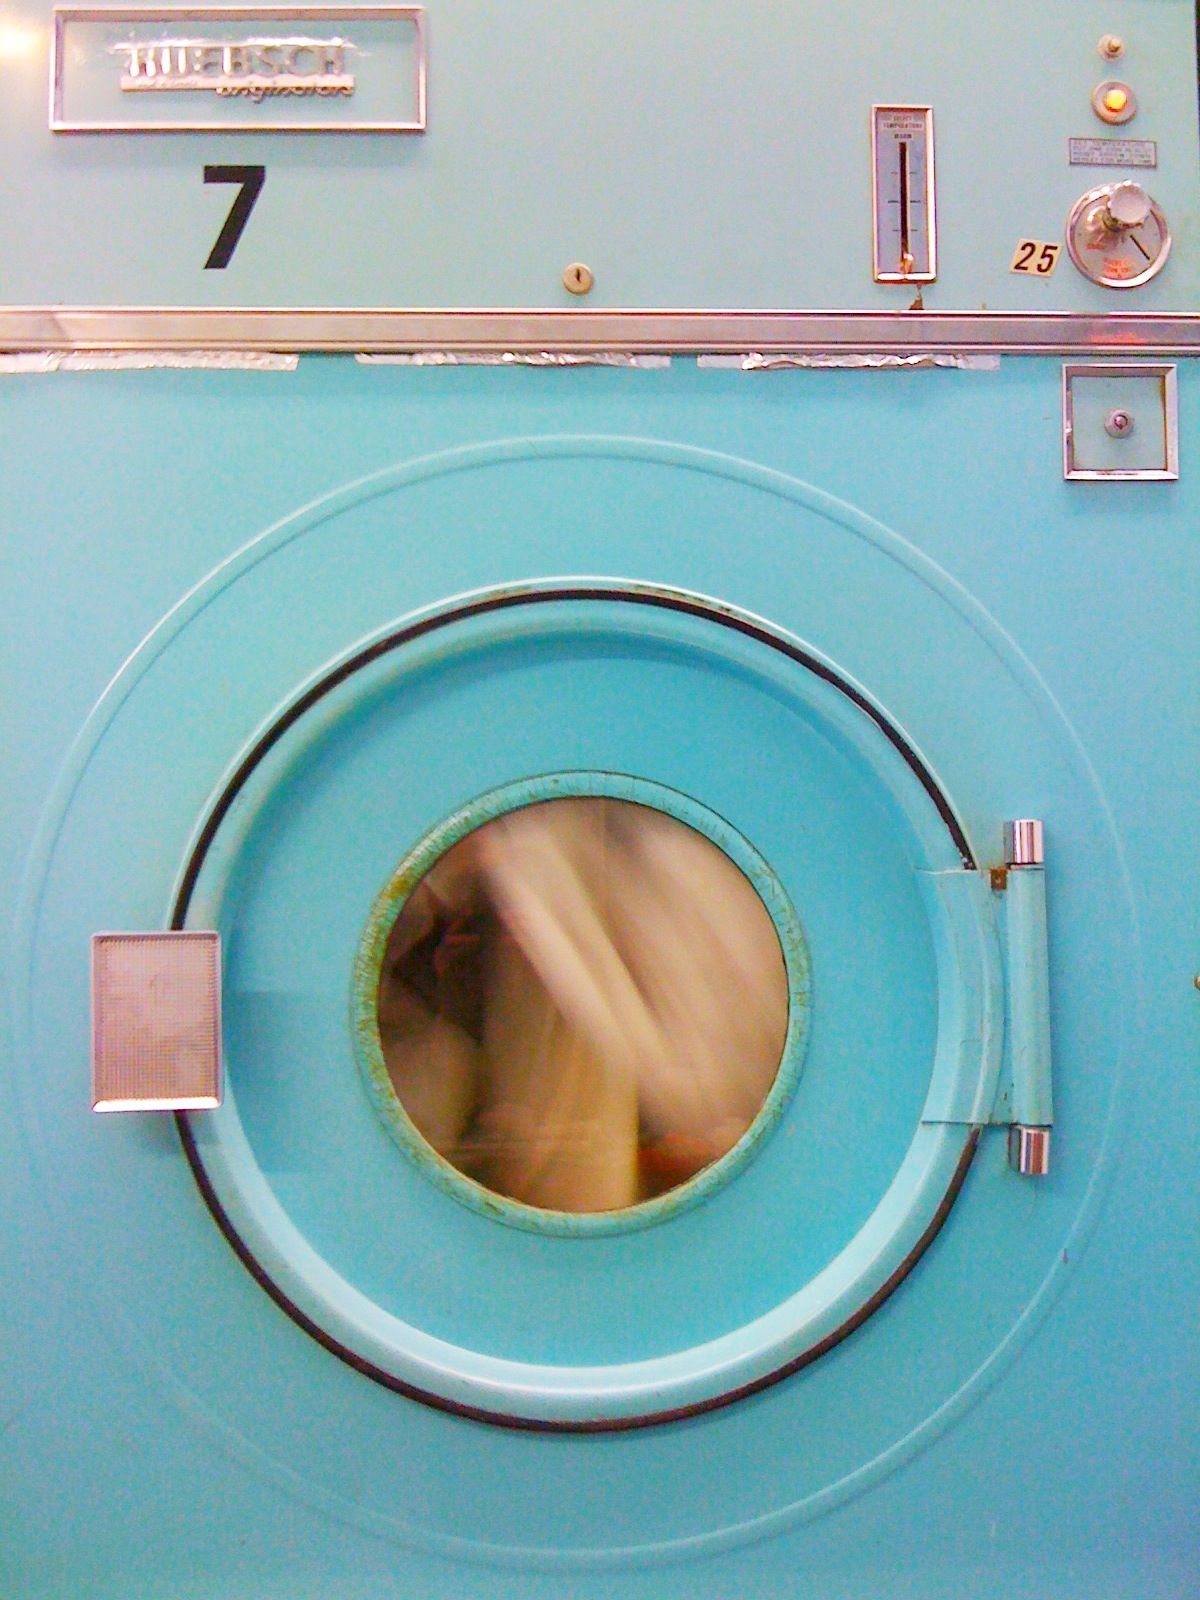 the dryer at our local laundromat. taken by my husband, bram zimmerman.